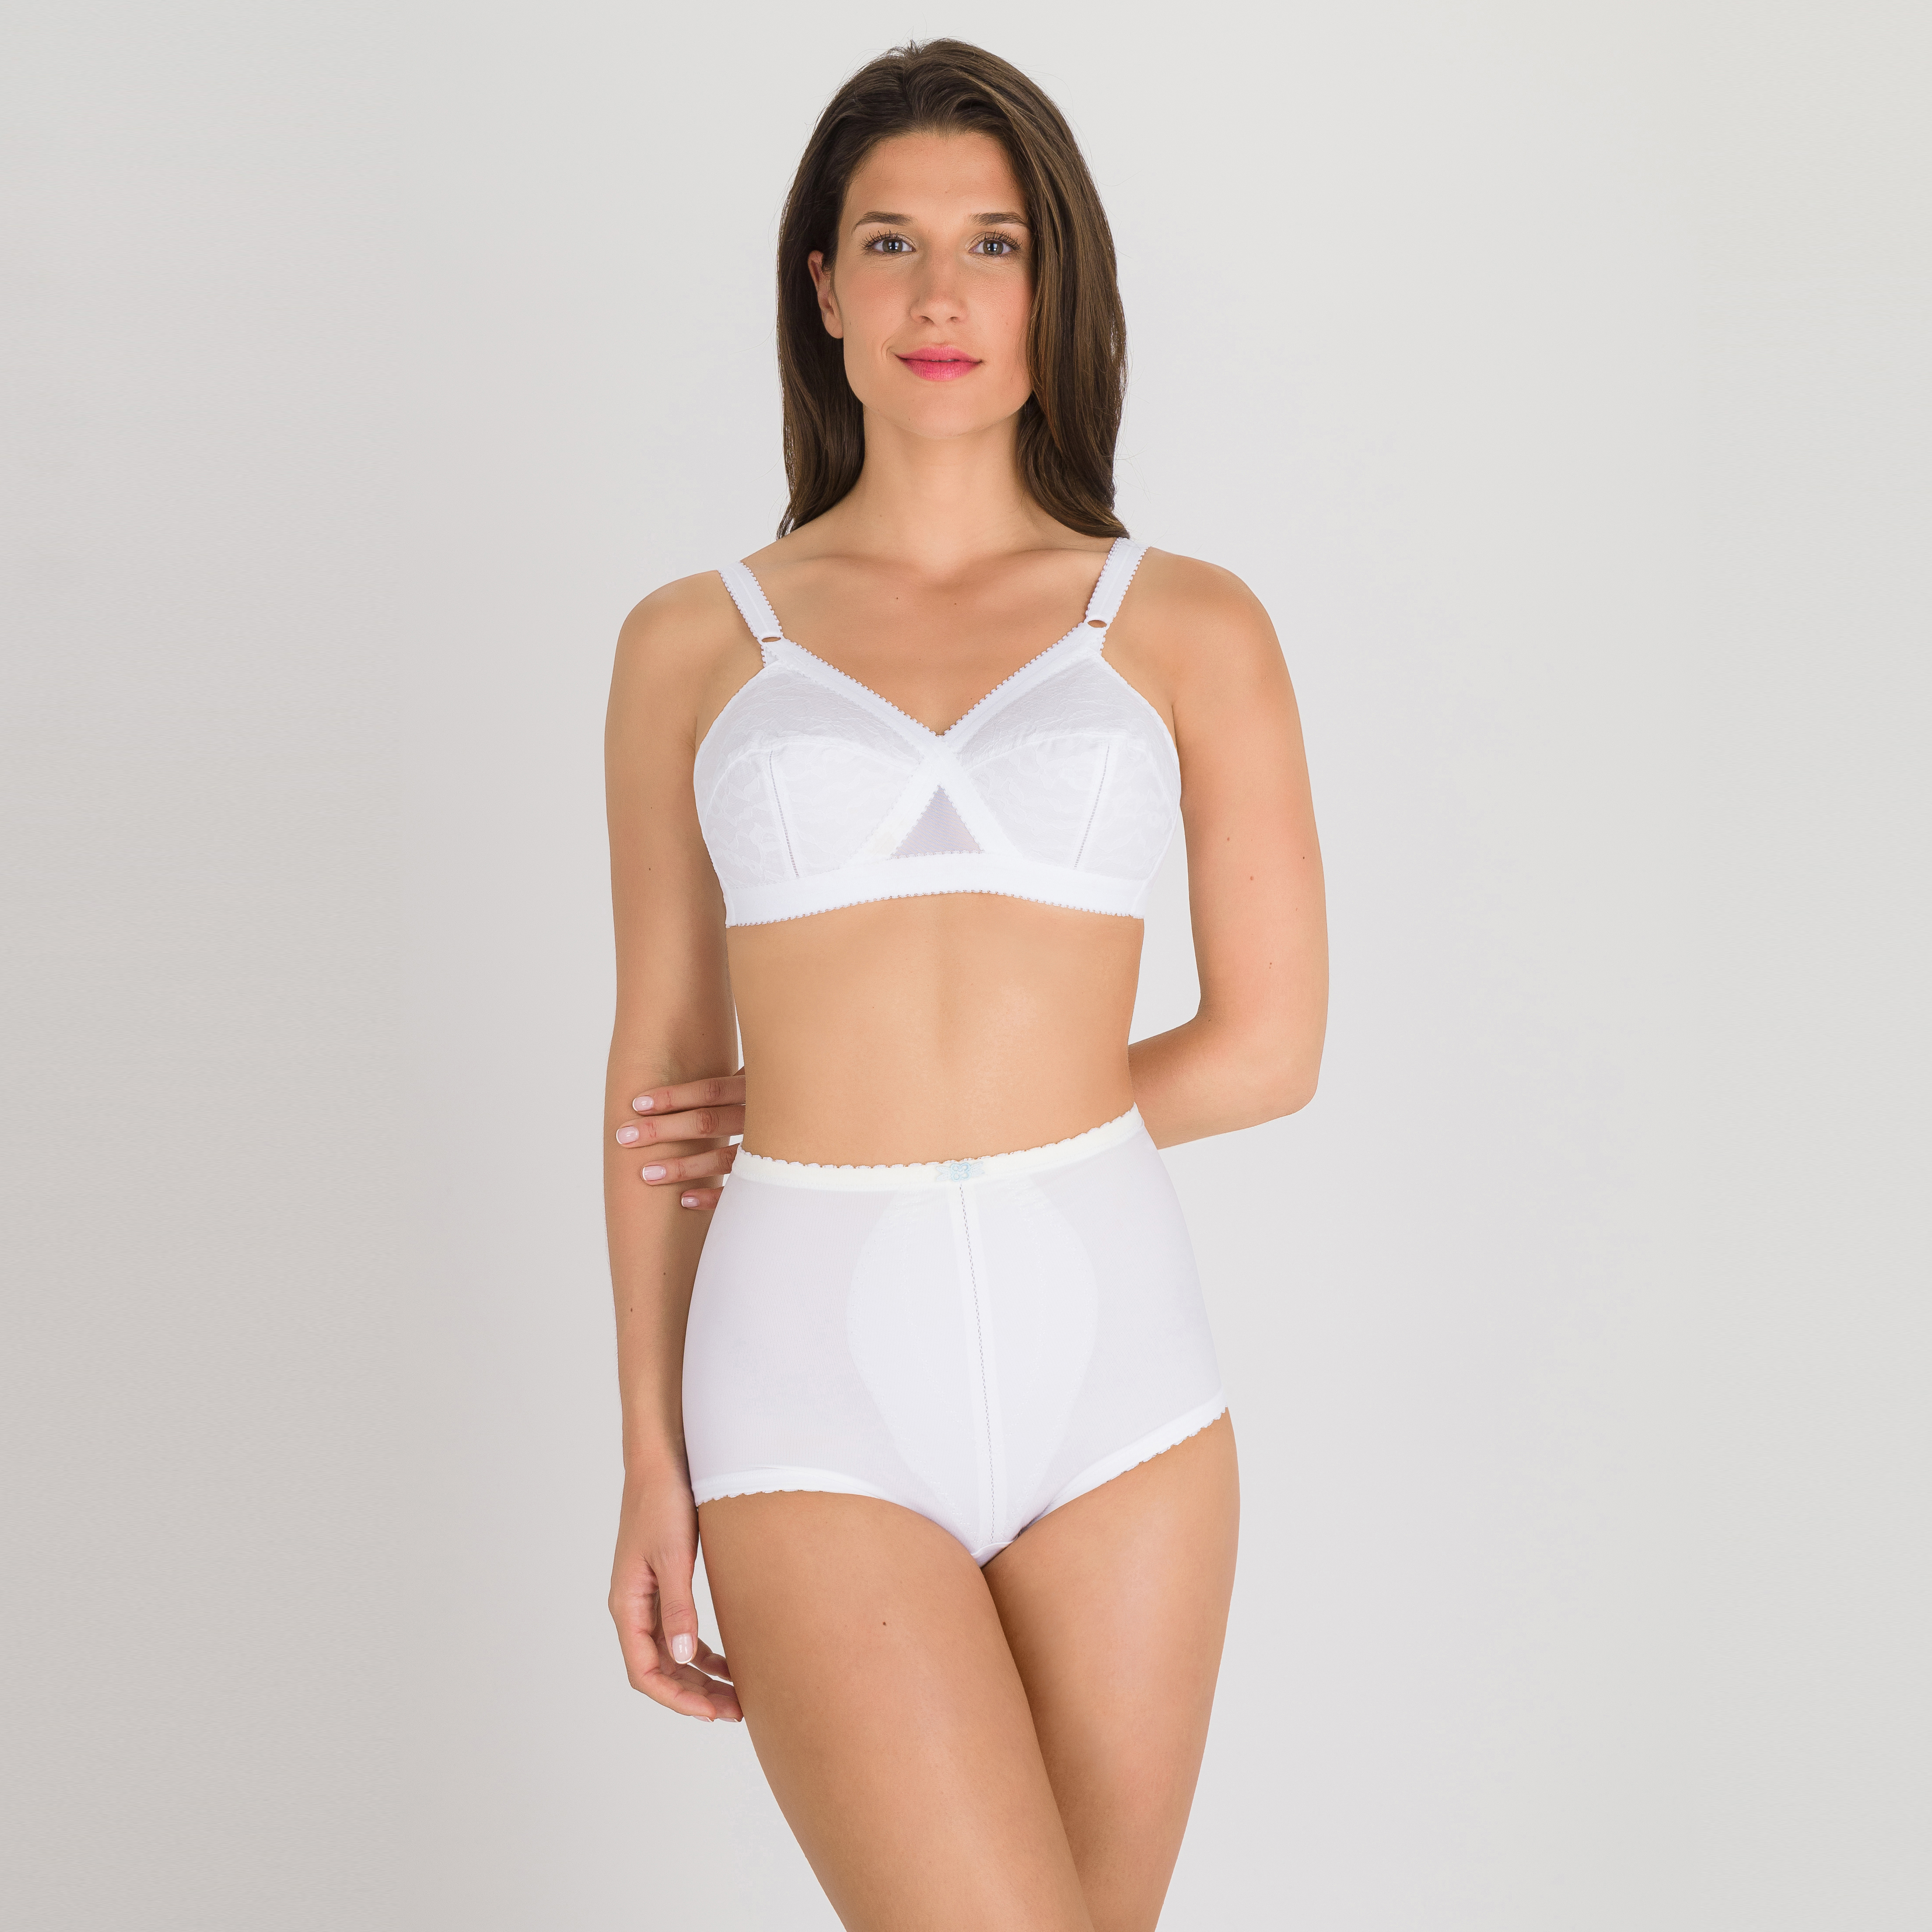 Culotte gainante serre-taille blanche  – ICUG-PLAYTEX